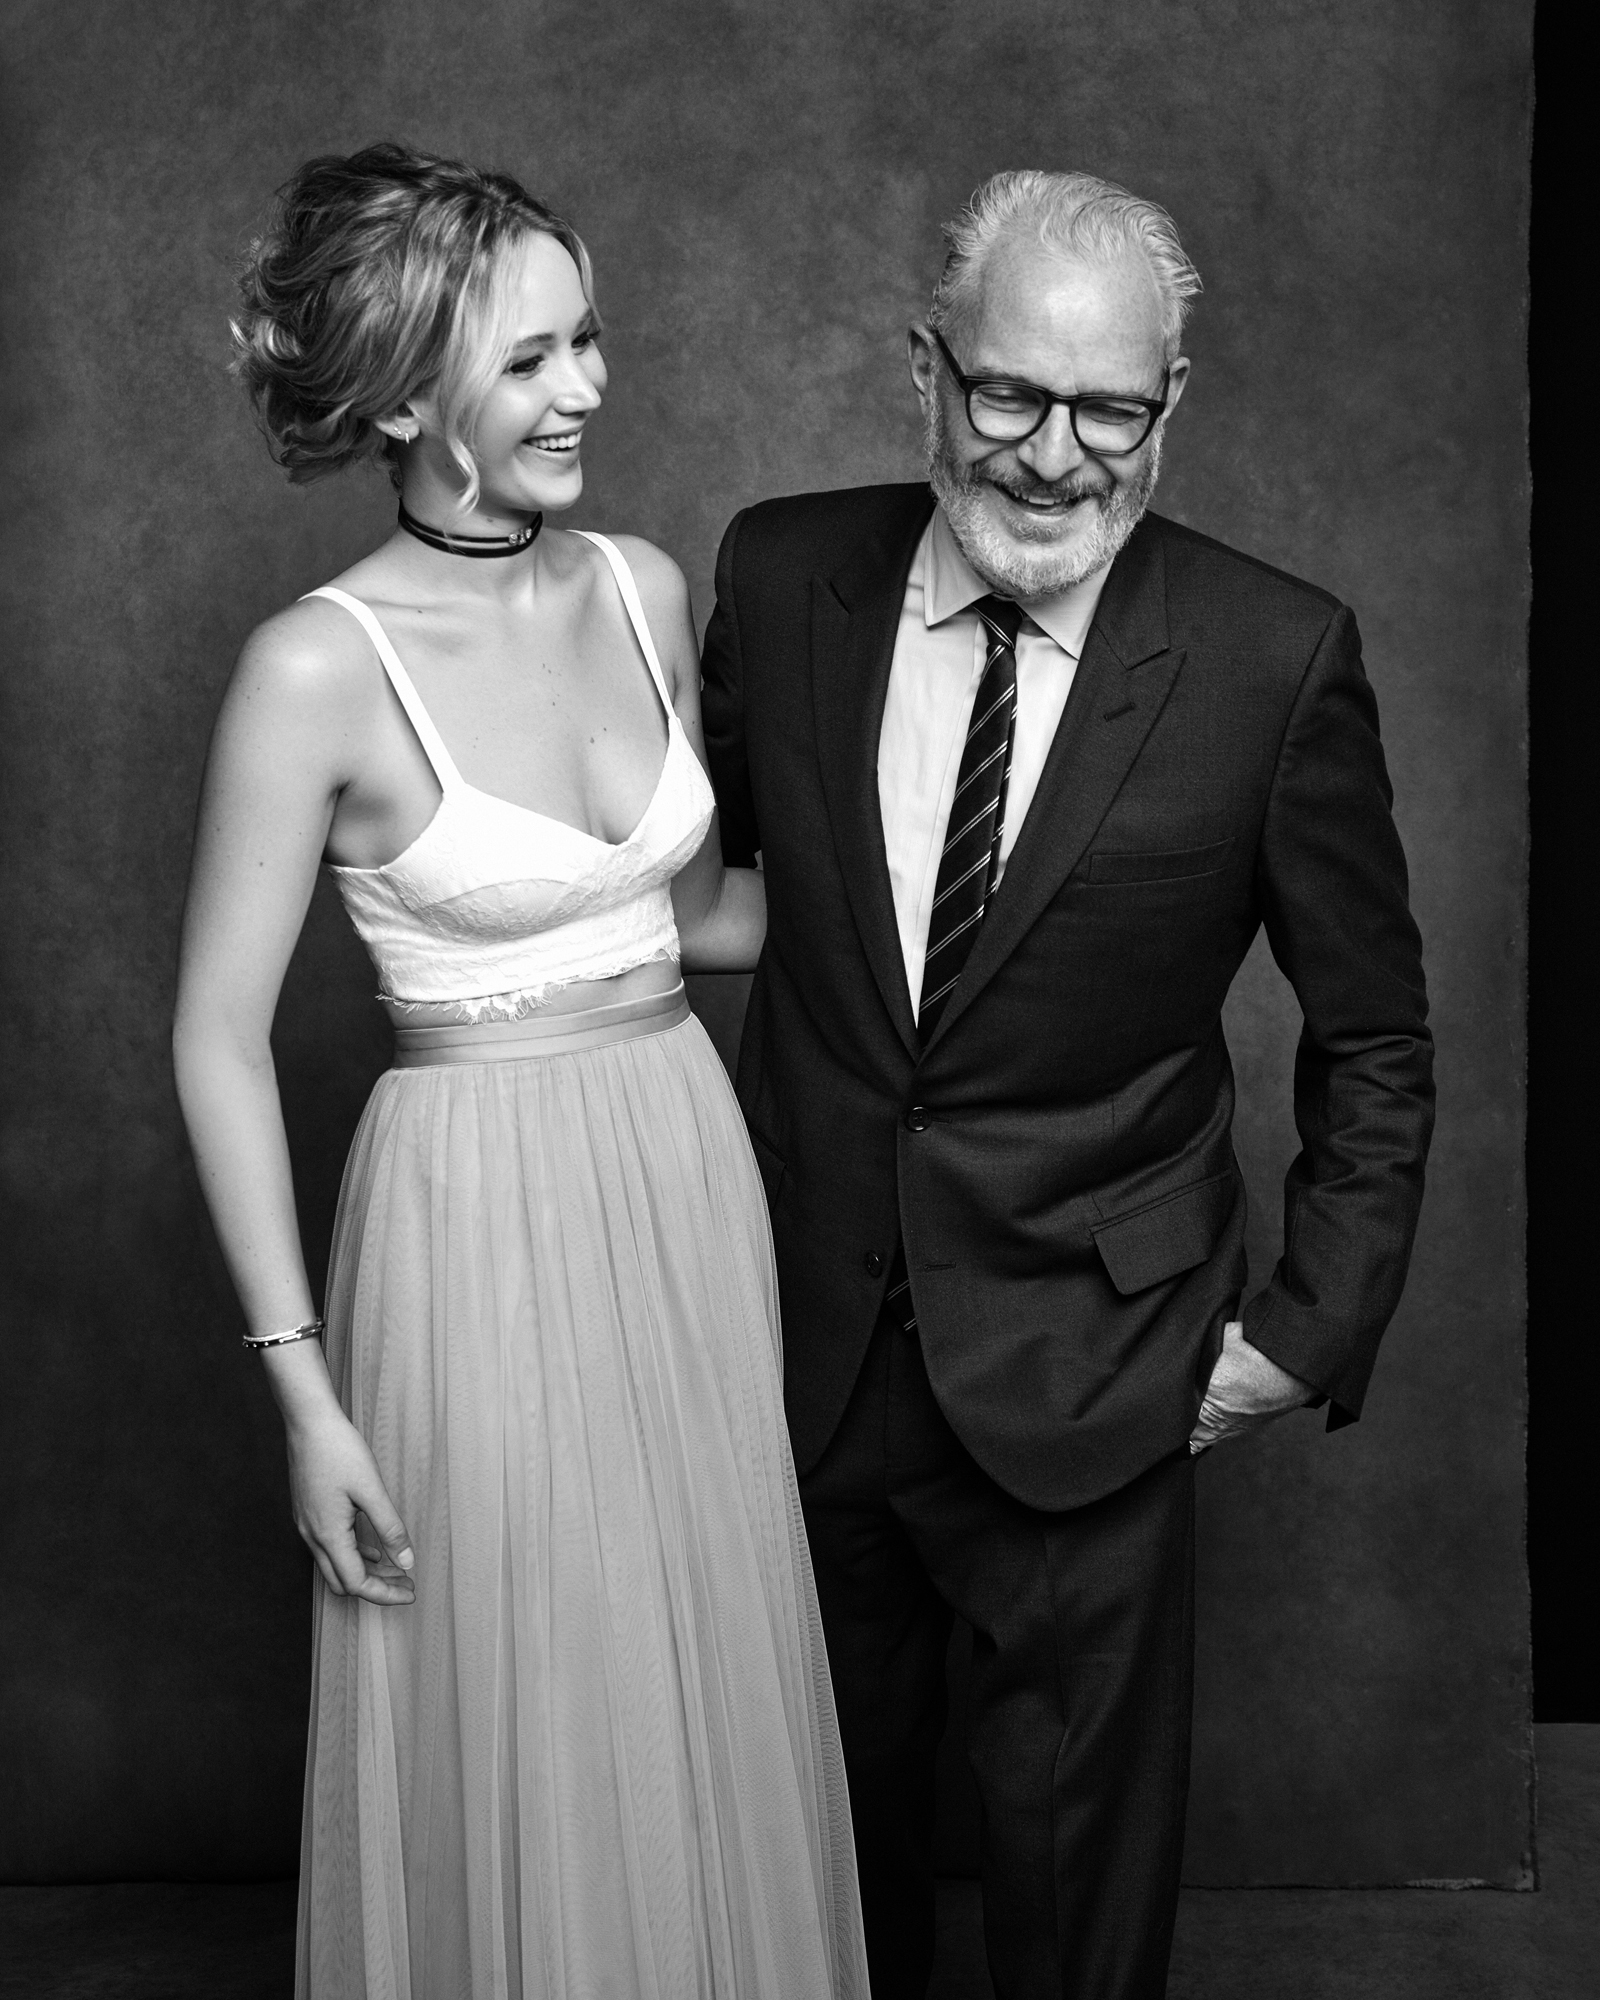 Clay_Cook_Jennifer_Lawrence_Foundation_The_Power_Of_One_05.jpg